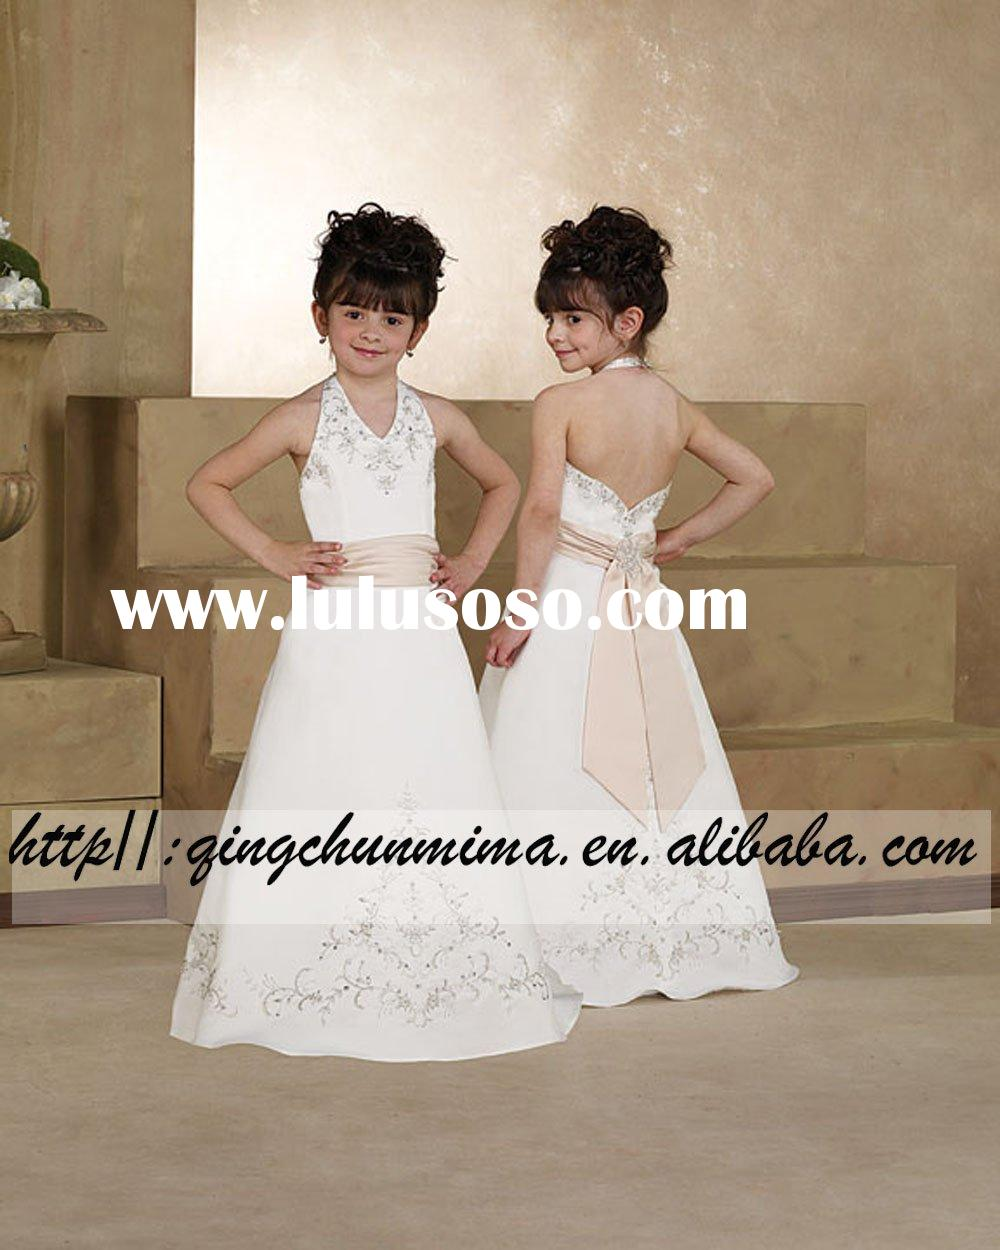 28108-1 Formal flower girl dress